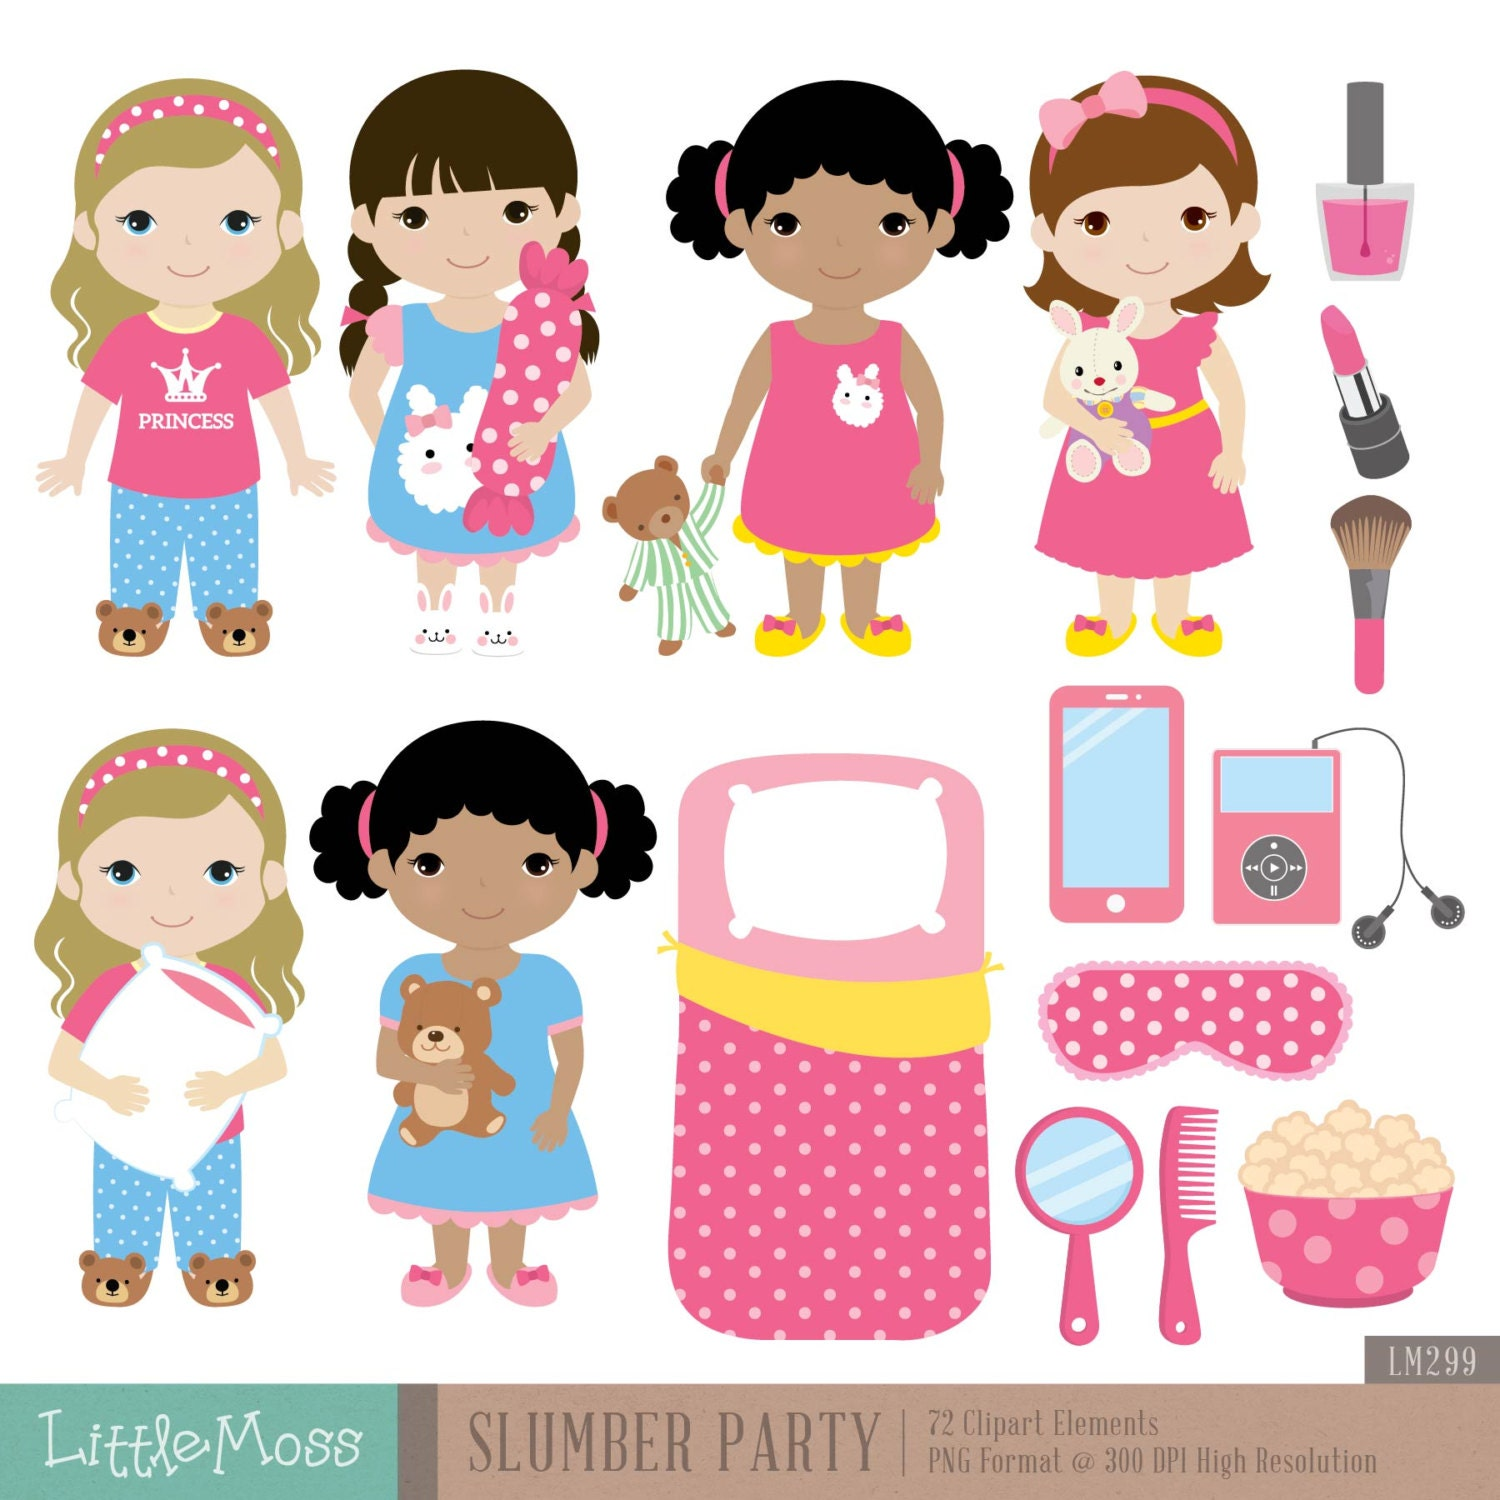 slumber party digital clipart from littlemoss on etsy studio pajama party clip art hd christmas pajama party clipart